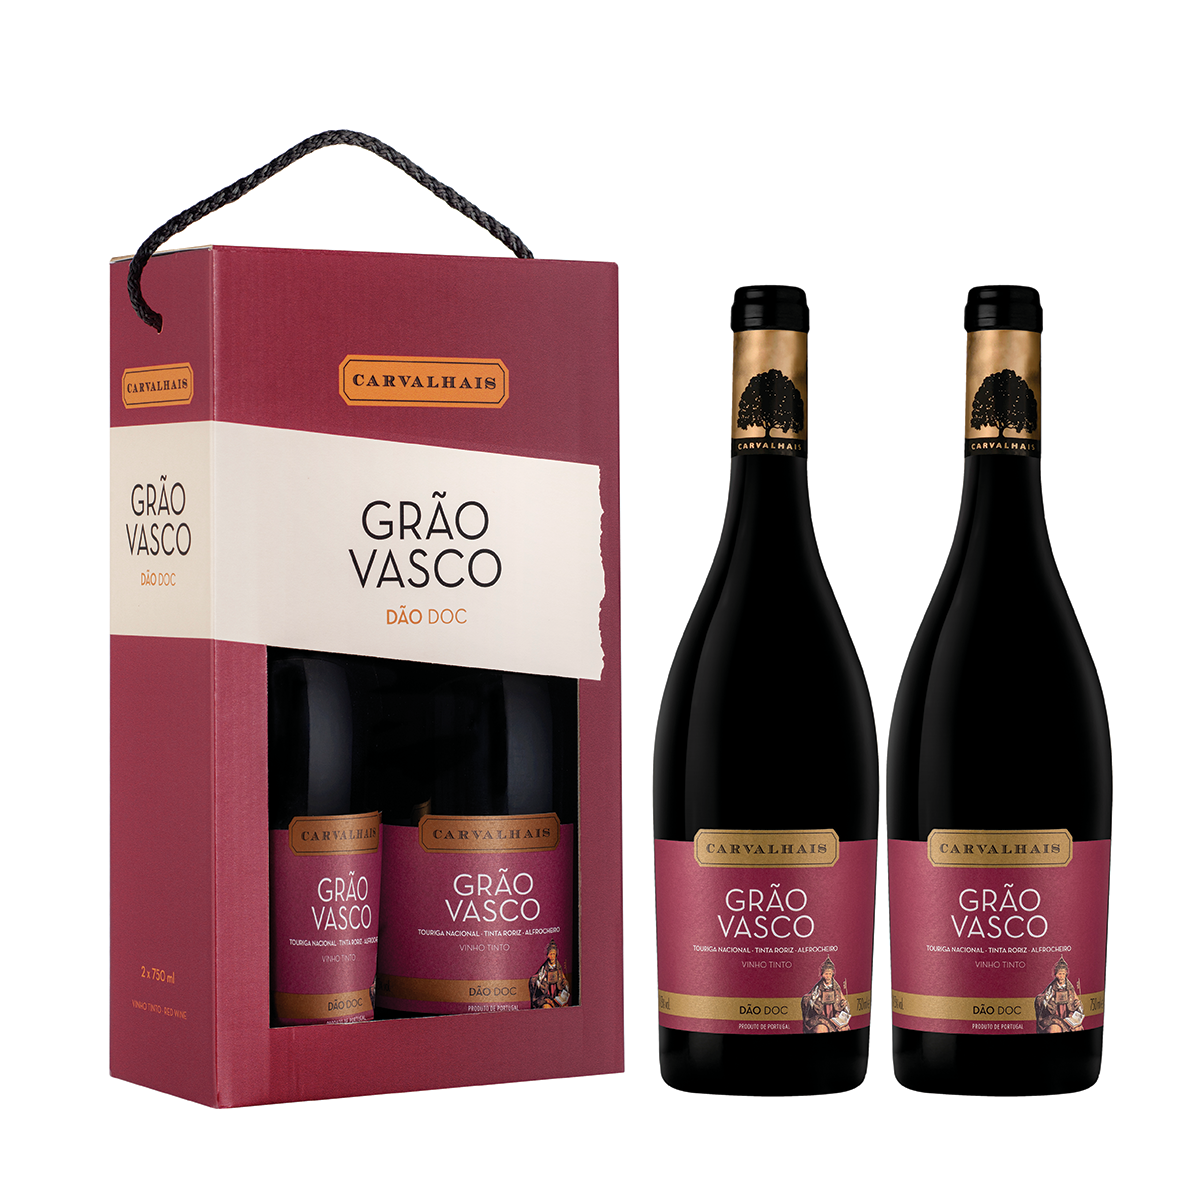 Carvalhais - Duo Pack Grão Vasco Tinto - 2019